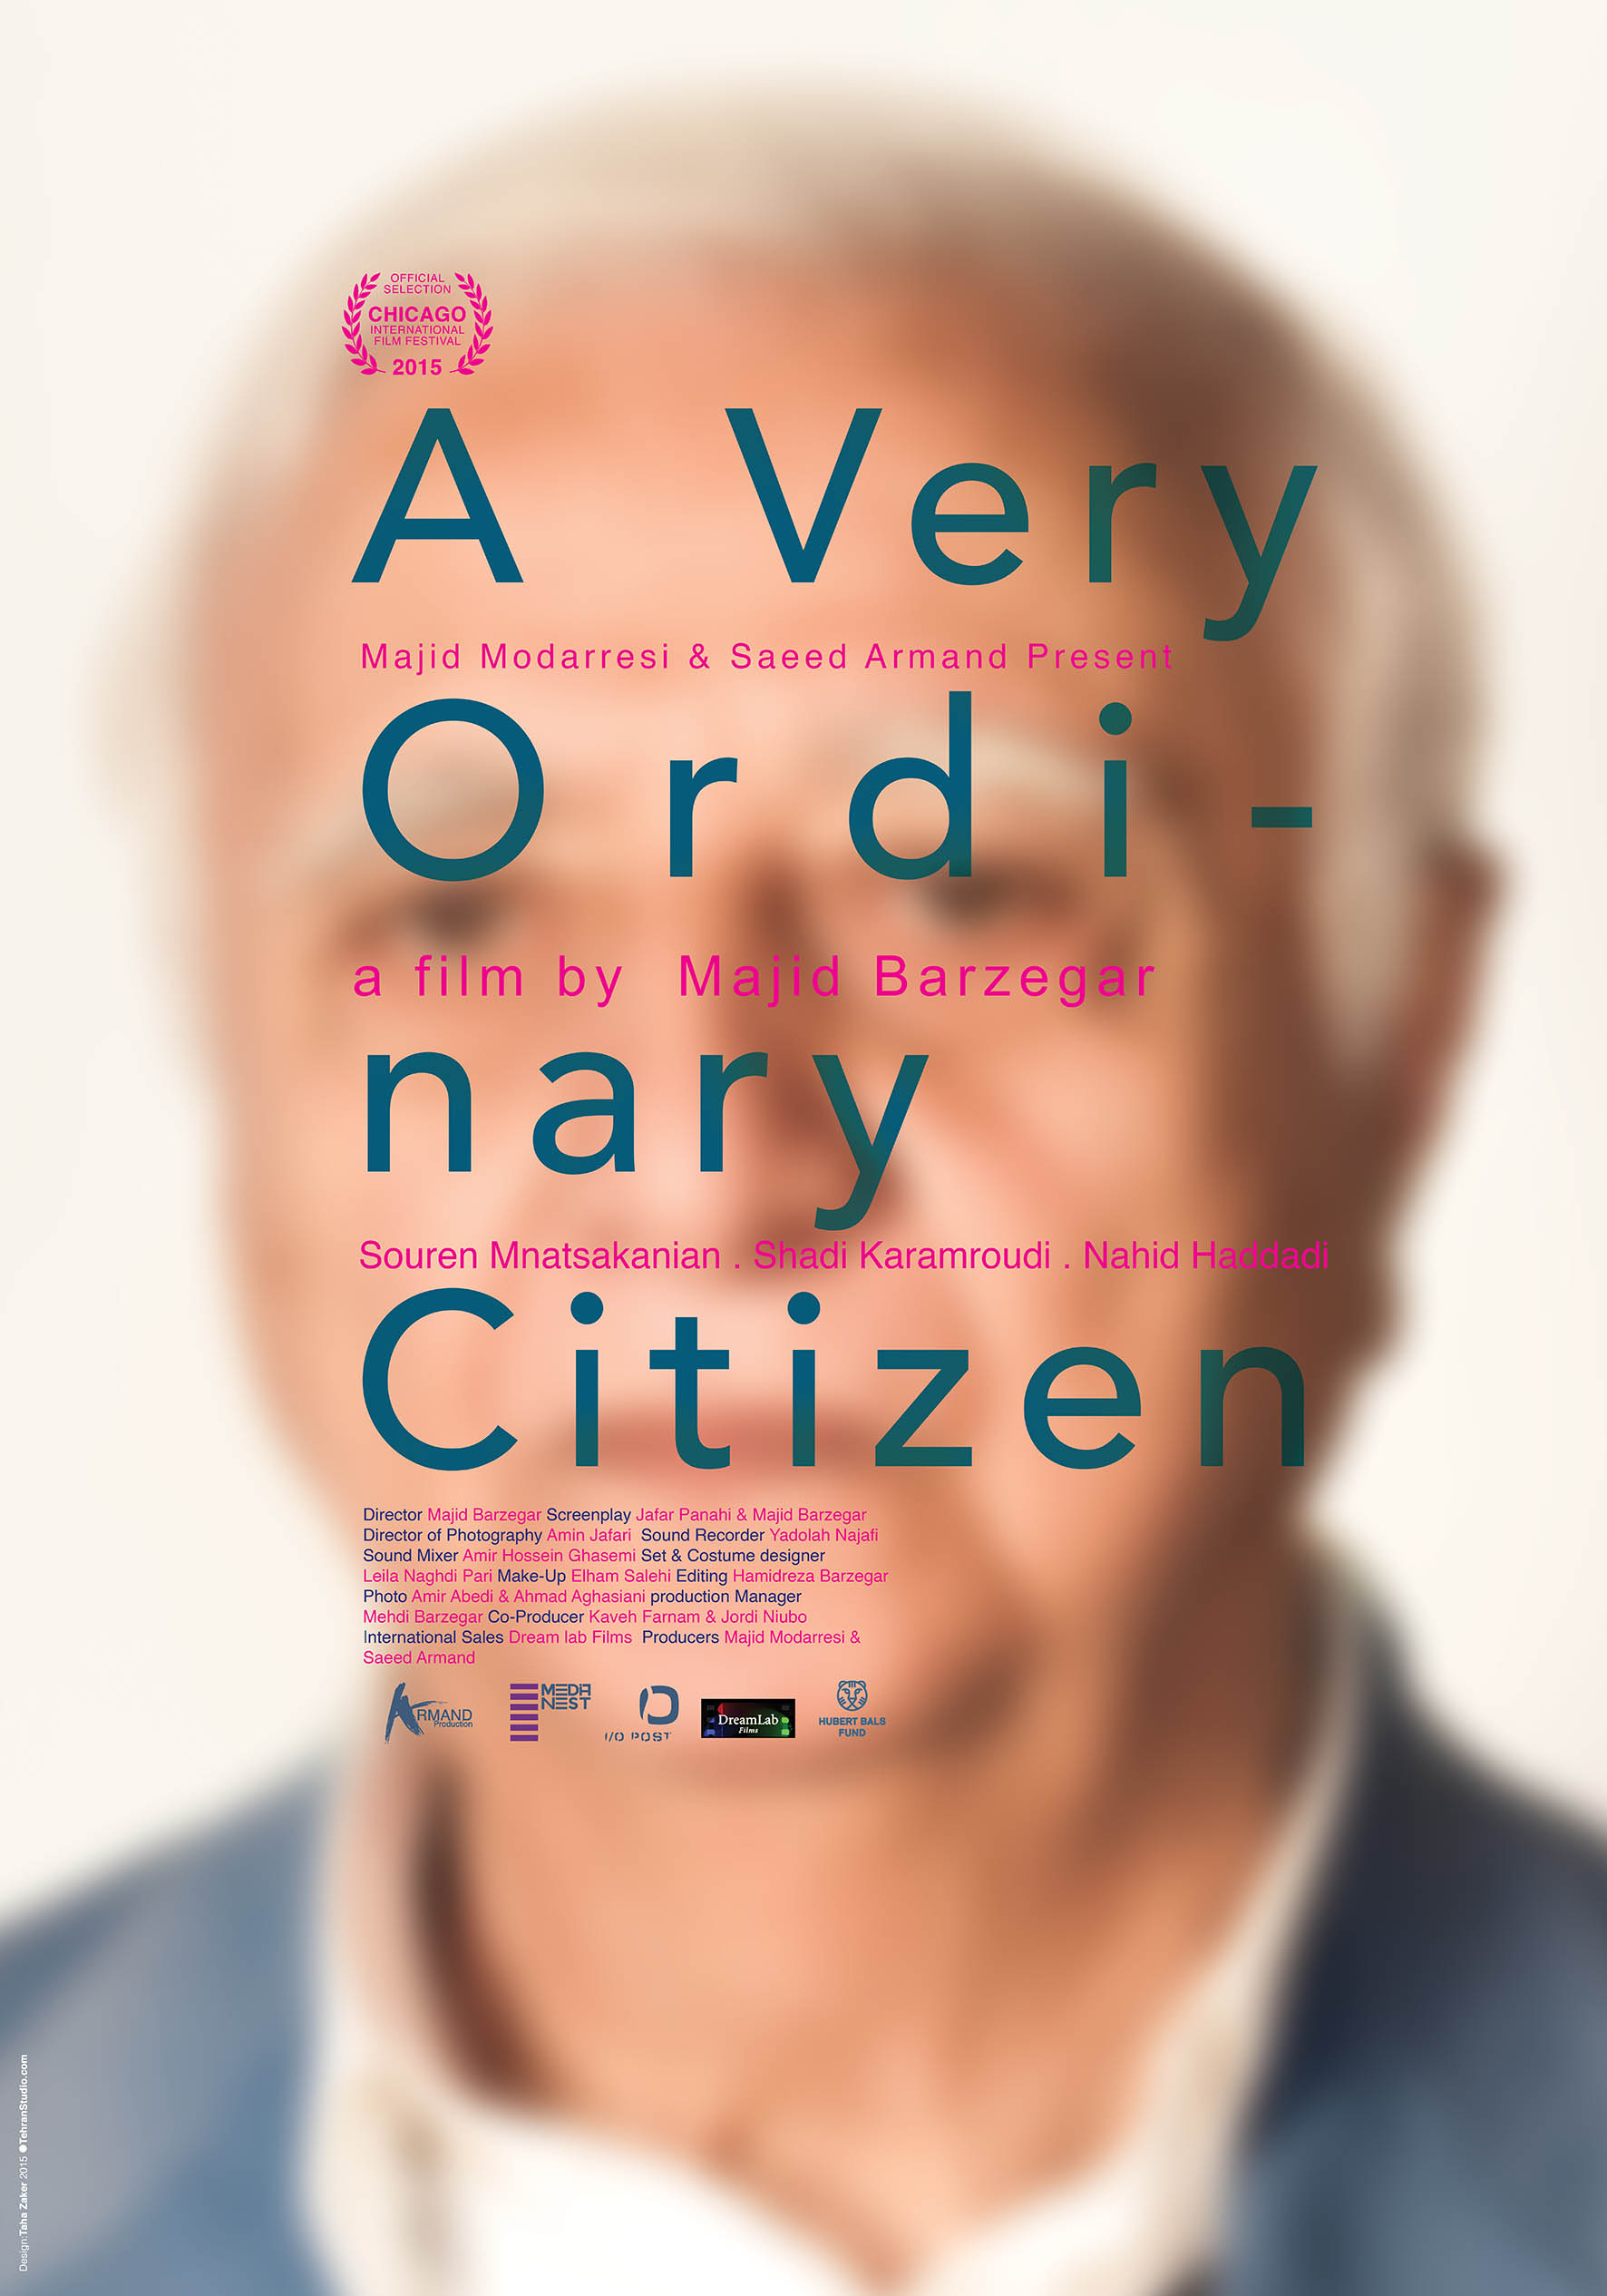 poster-001-a-very-ordinary-citizen